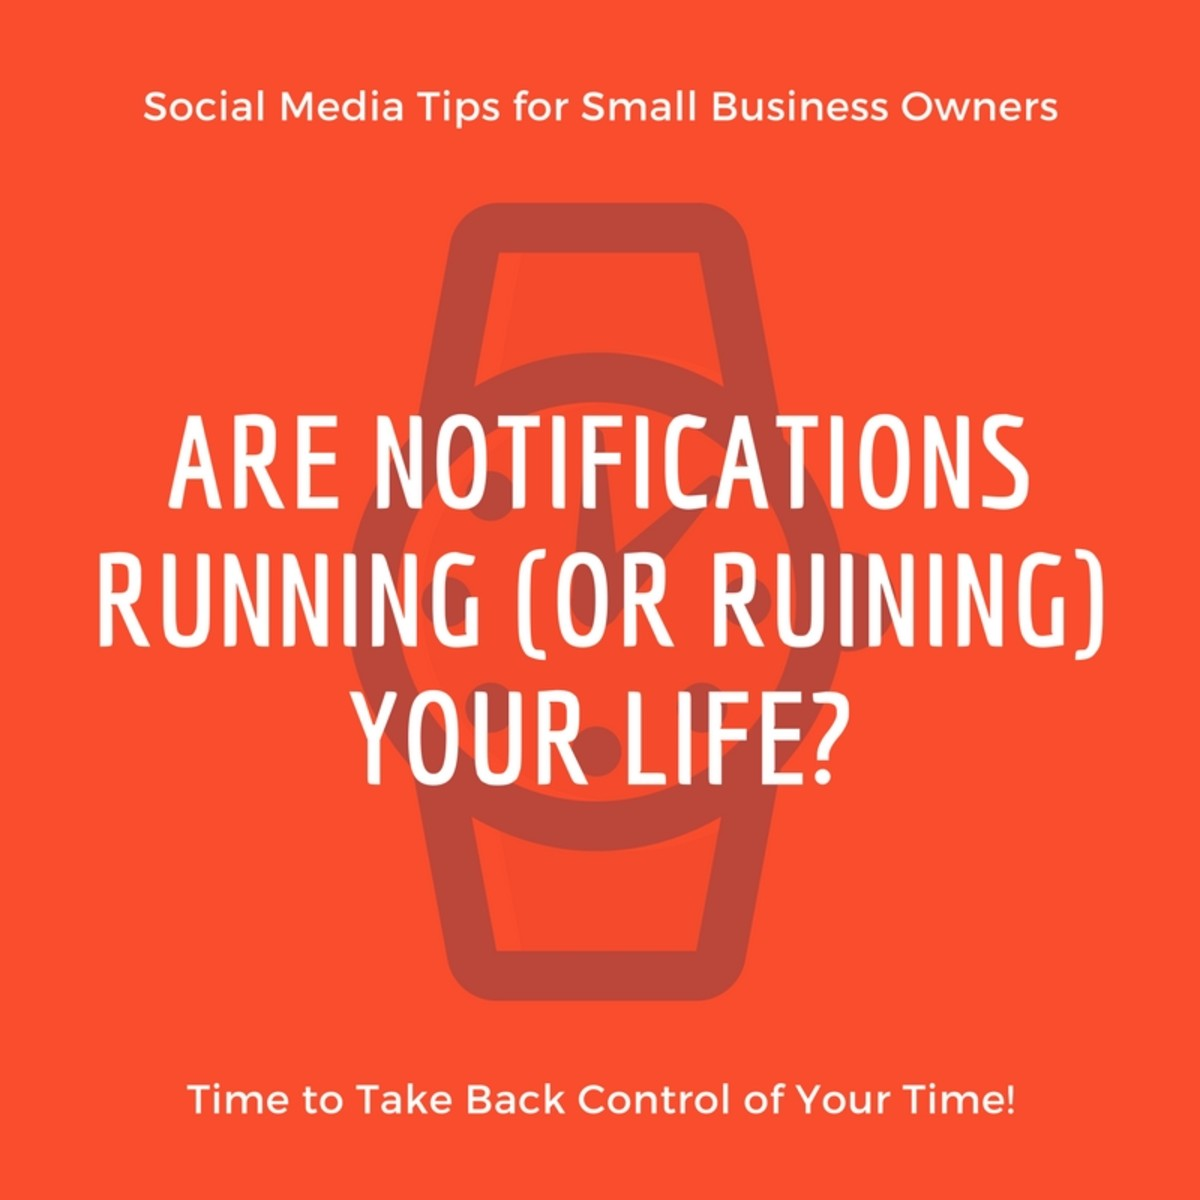 Social Media Tips for Small Business Owners: Are Notifications Running (or Ruining) Your Life?